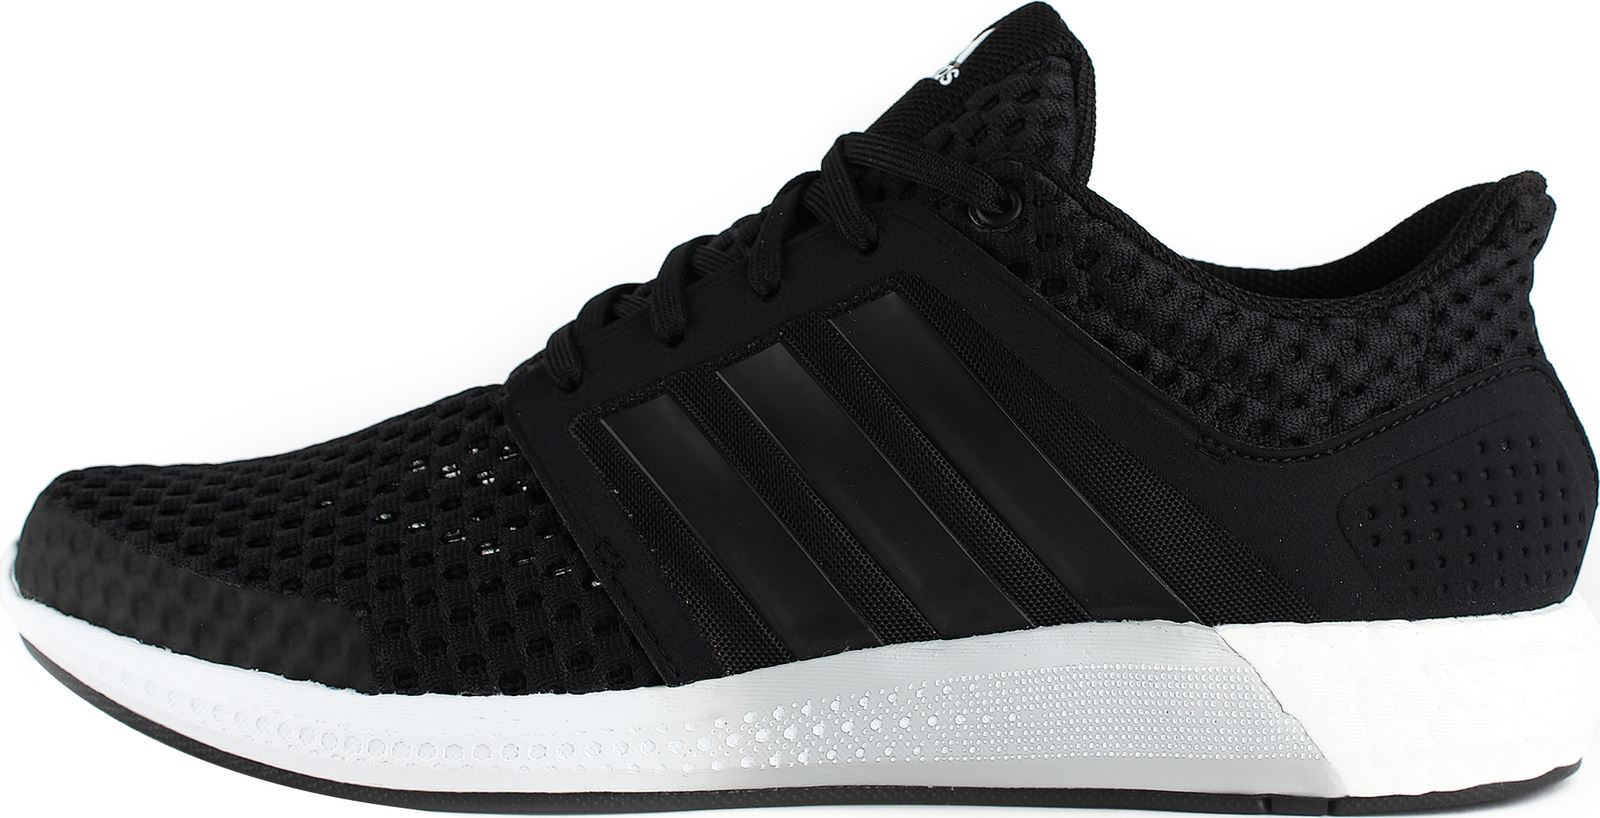 95ee755f416e5 ... adidas Boost Solar RNR Running Shoes Mens Black Gym Fitness Trainers  Sneakers ...